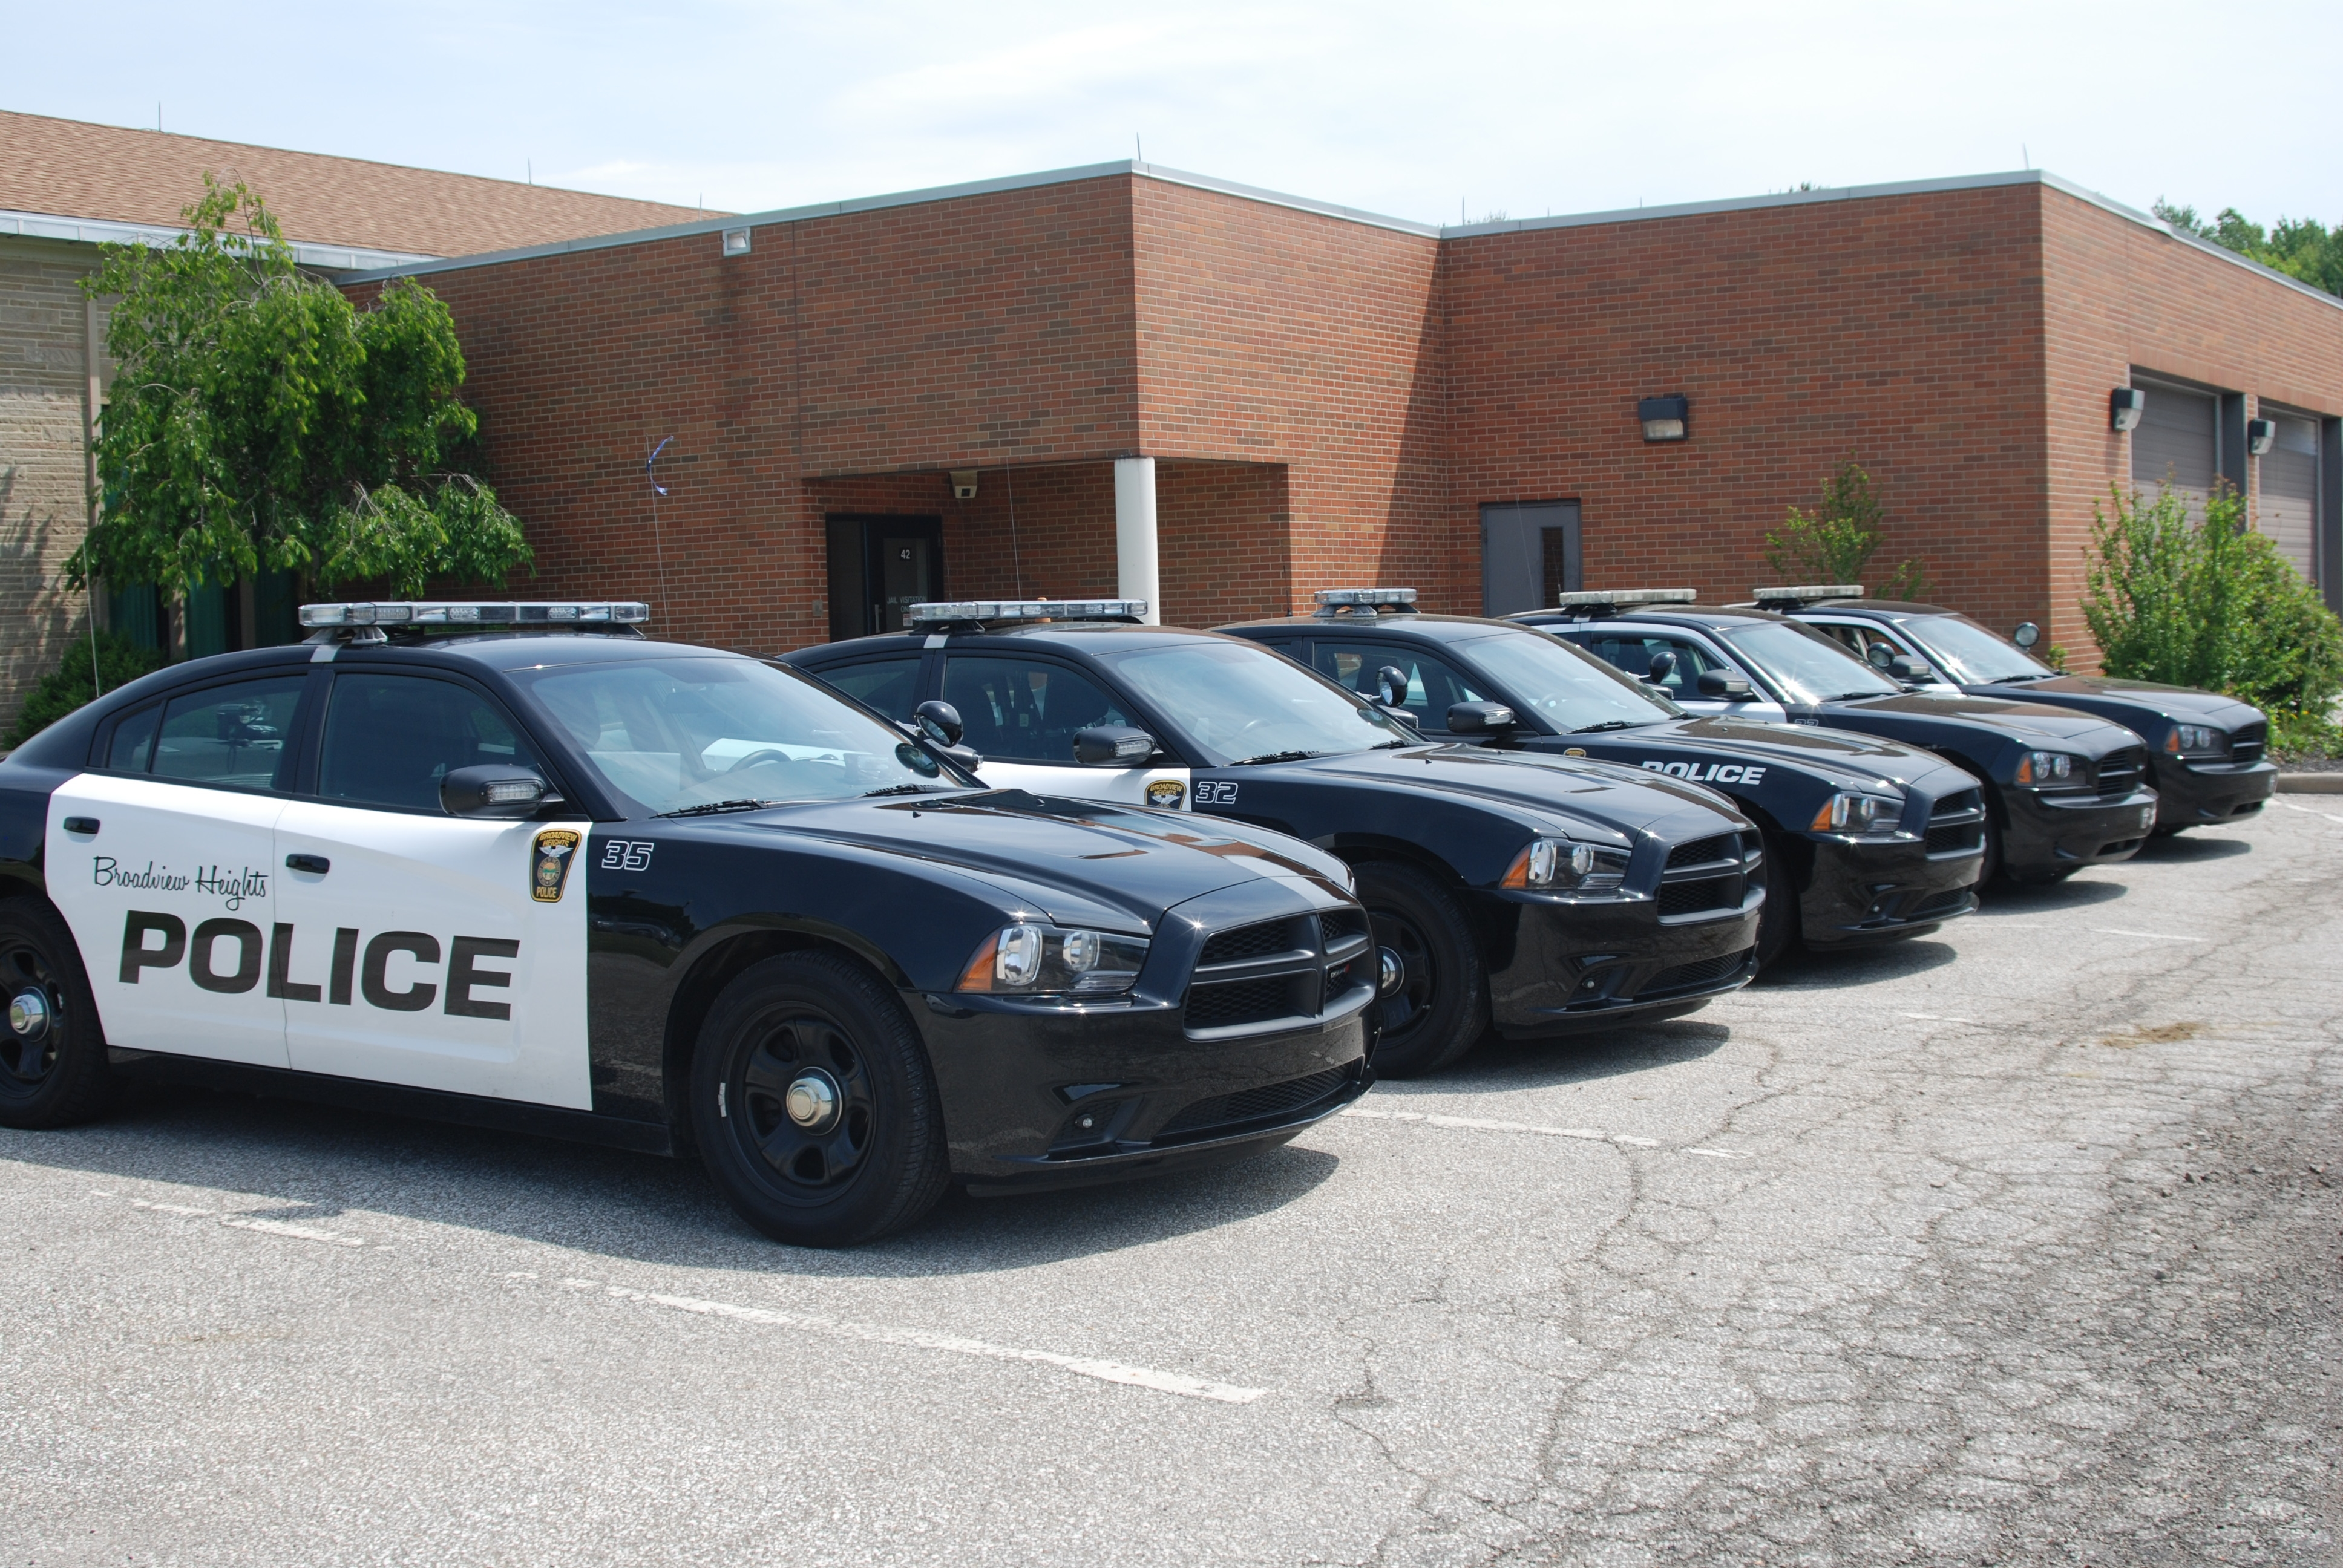 Vehicles in front of the Broadview Heights Police Department